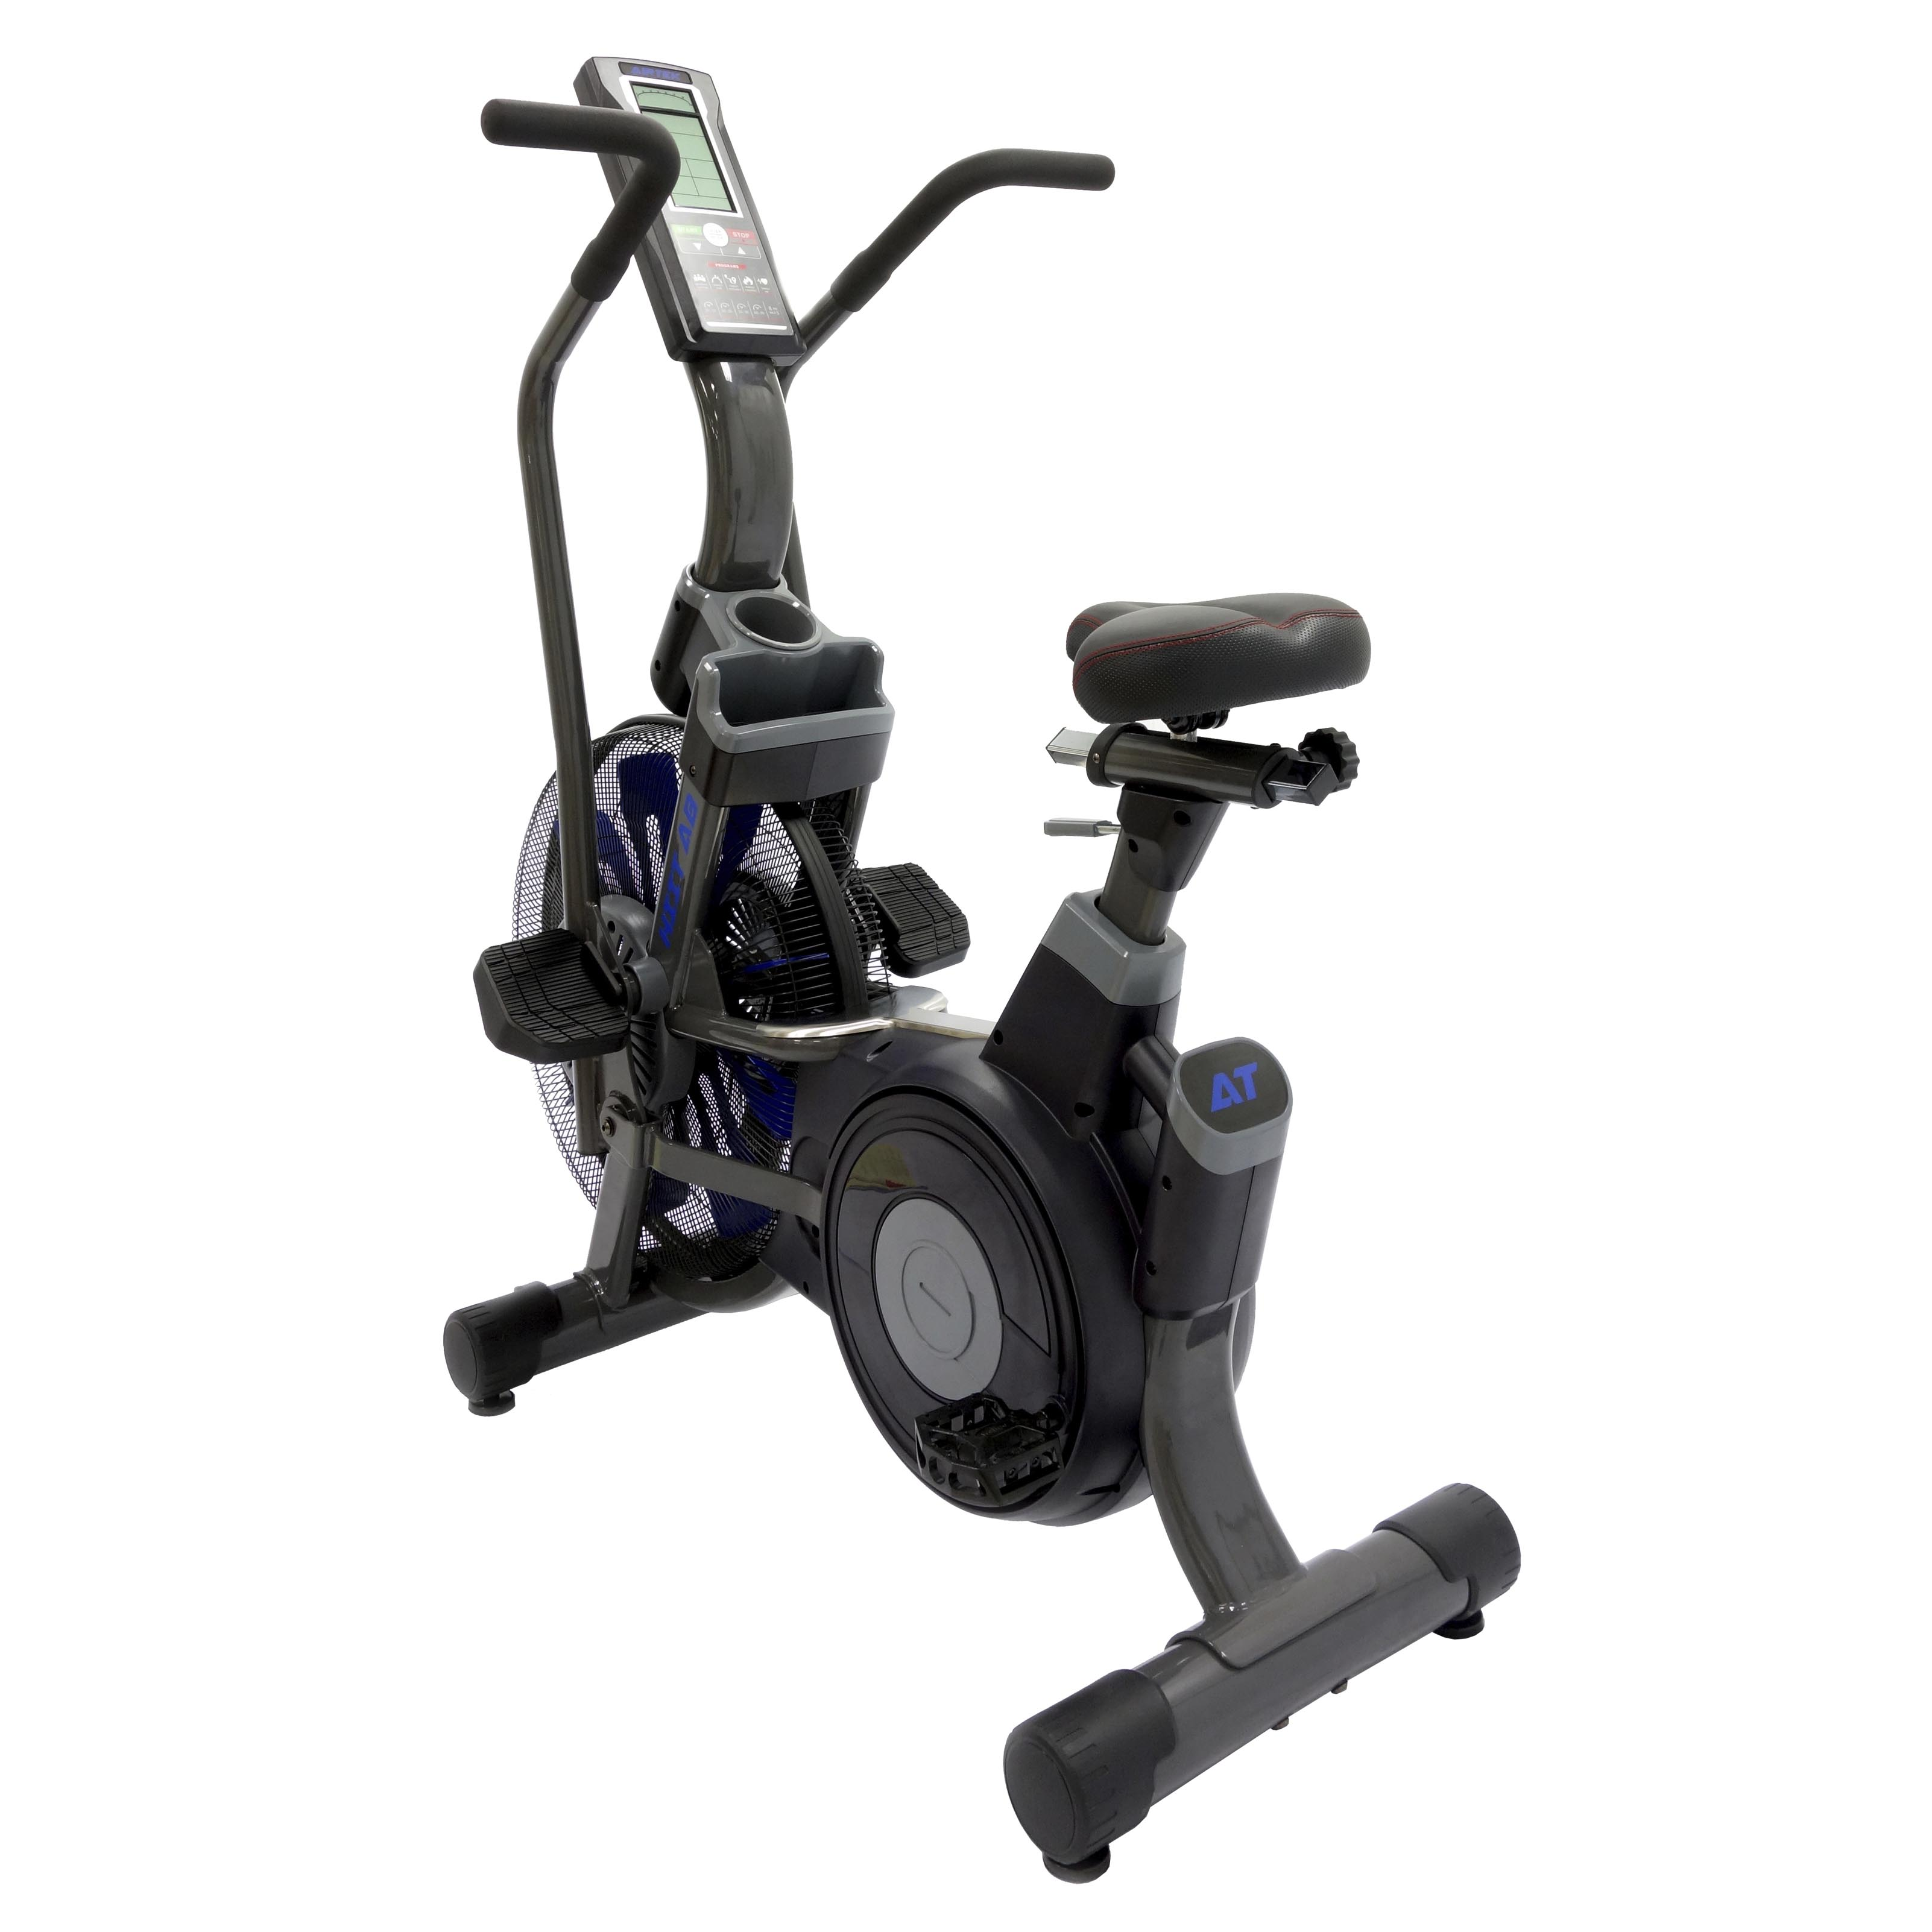 AirTEK Fitness HIIT Air Bike Back